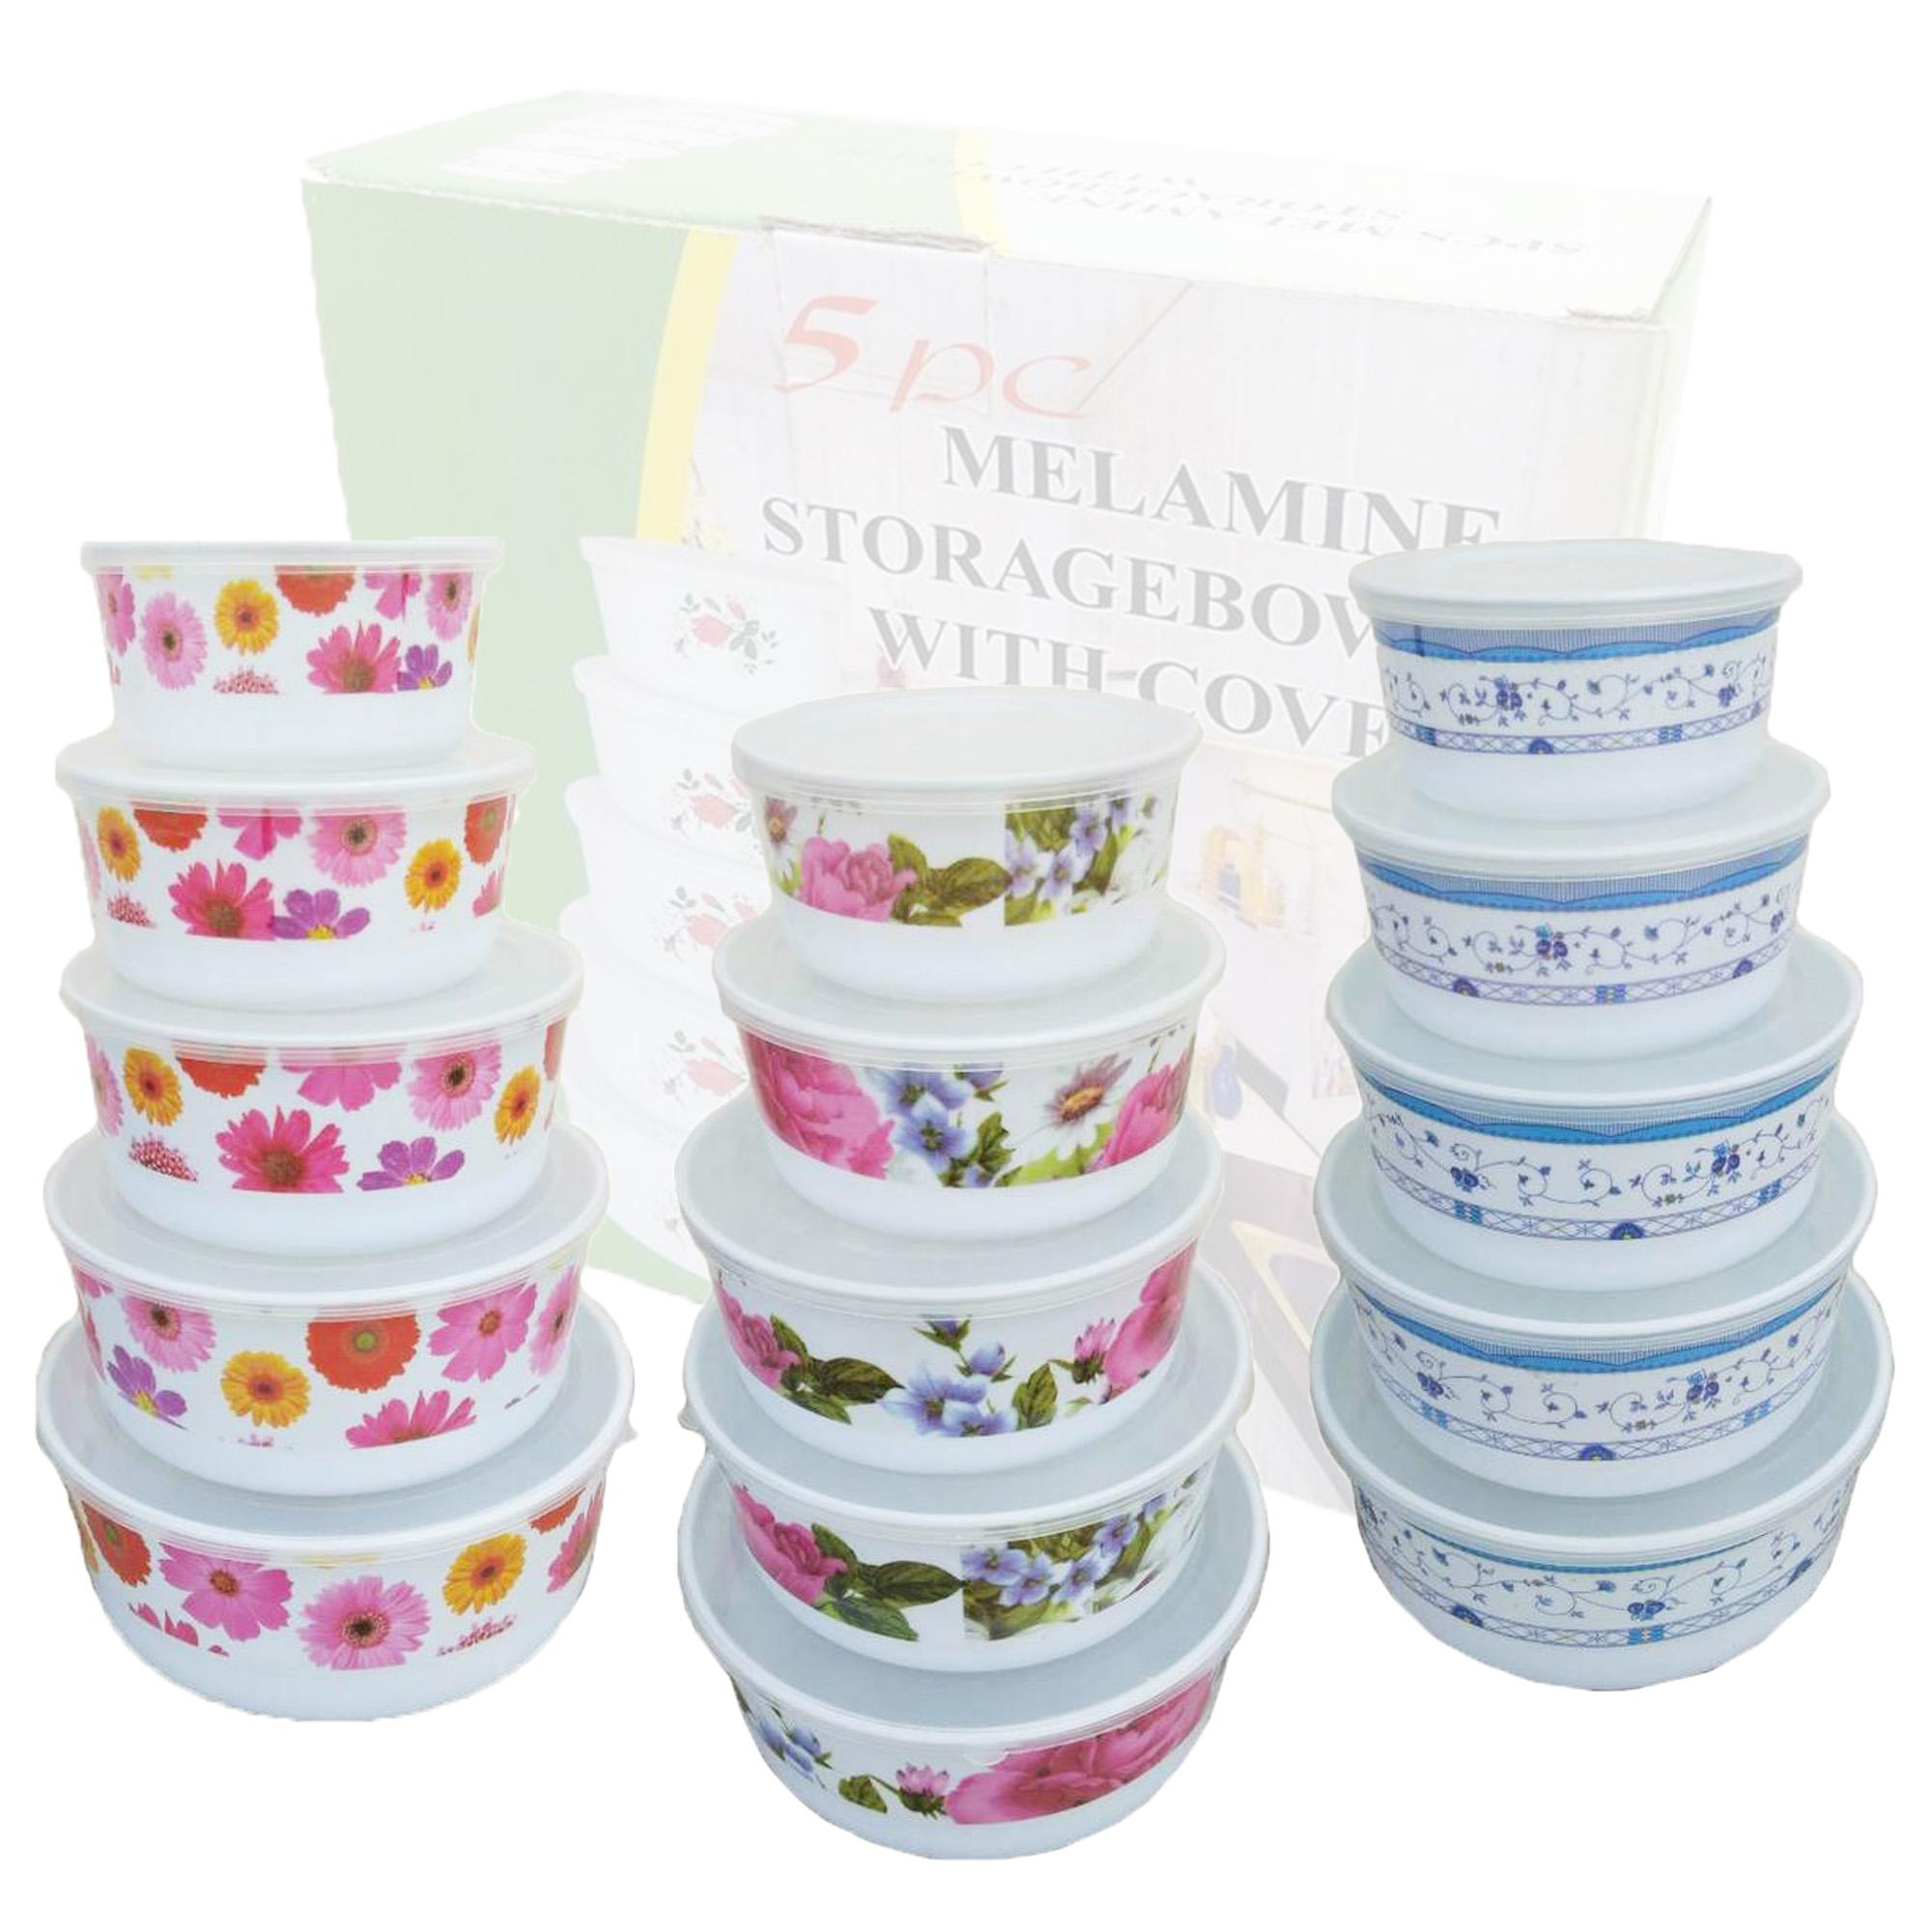 5 Pcs. Plastic Storage Bowl Food Container With Cover By Geneva Online Shop.